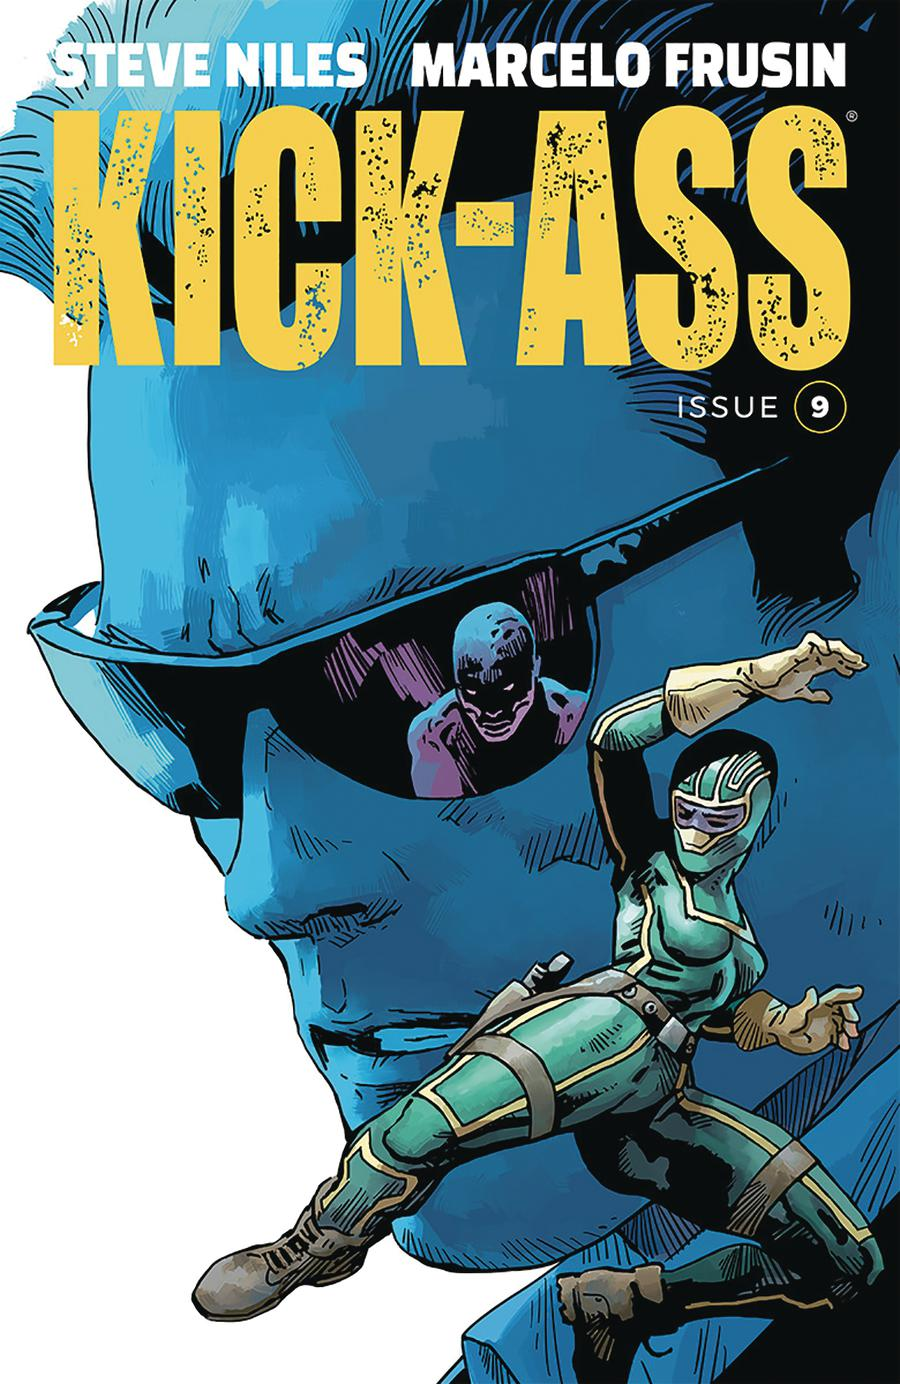 Kick-Ass Vol 4 #9 Cover A Regular Marcelo Frusin Color Cover